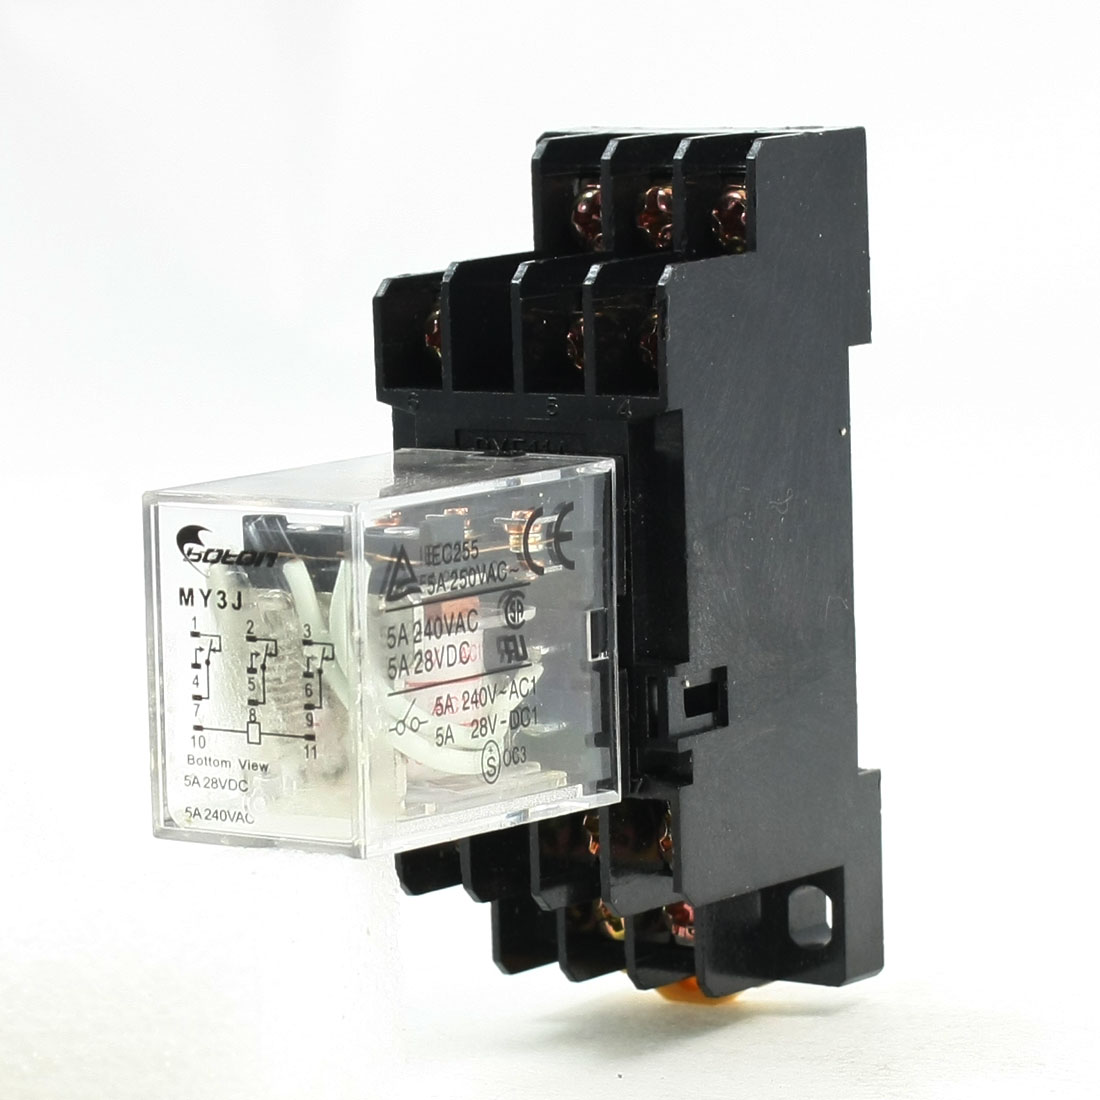 AC 100V Coil 3PDT 11 Pins Electromagnetic Power Relay 5A 250VAC/28VDC w Base